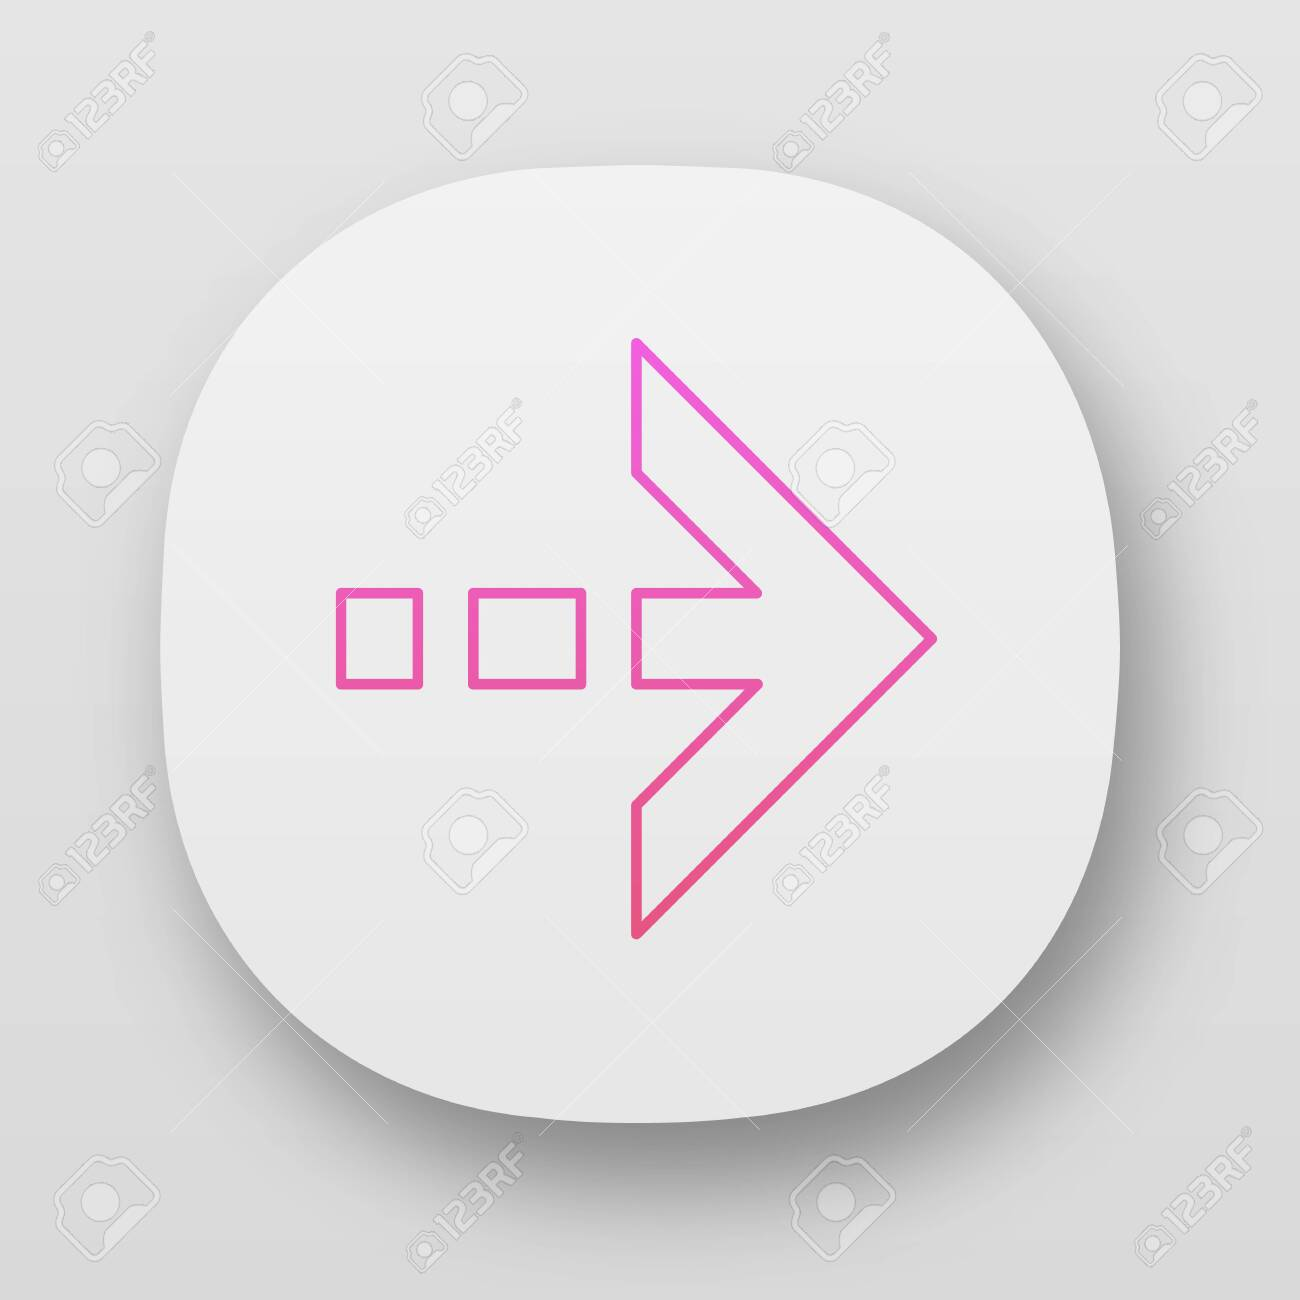 Arrow with dotted dash line app icon  East direction  Arrow indicating